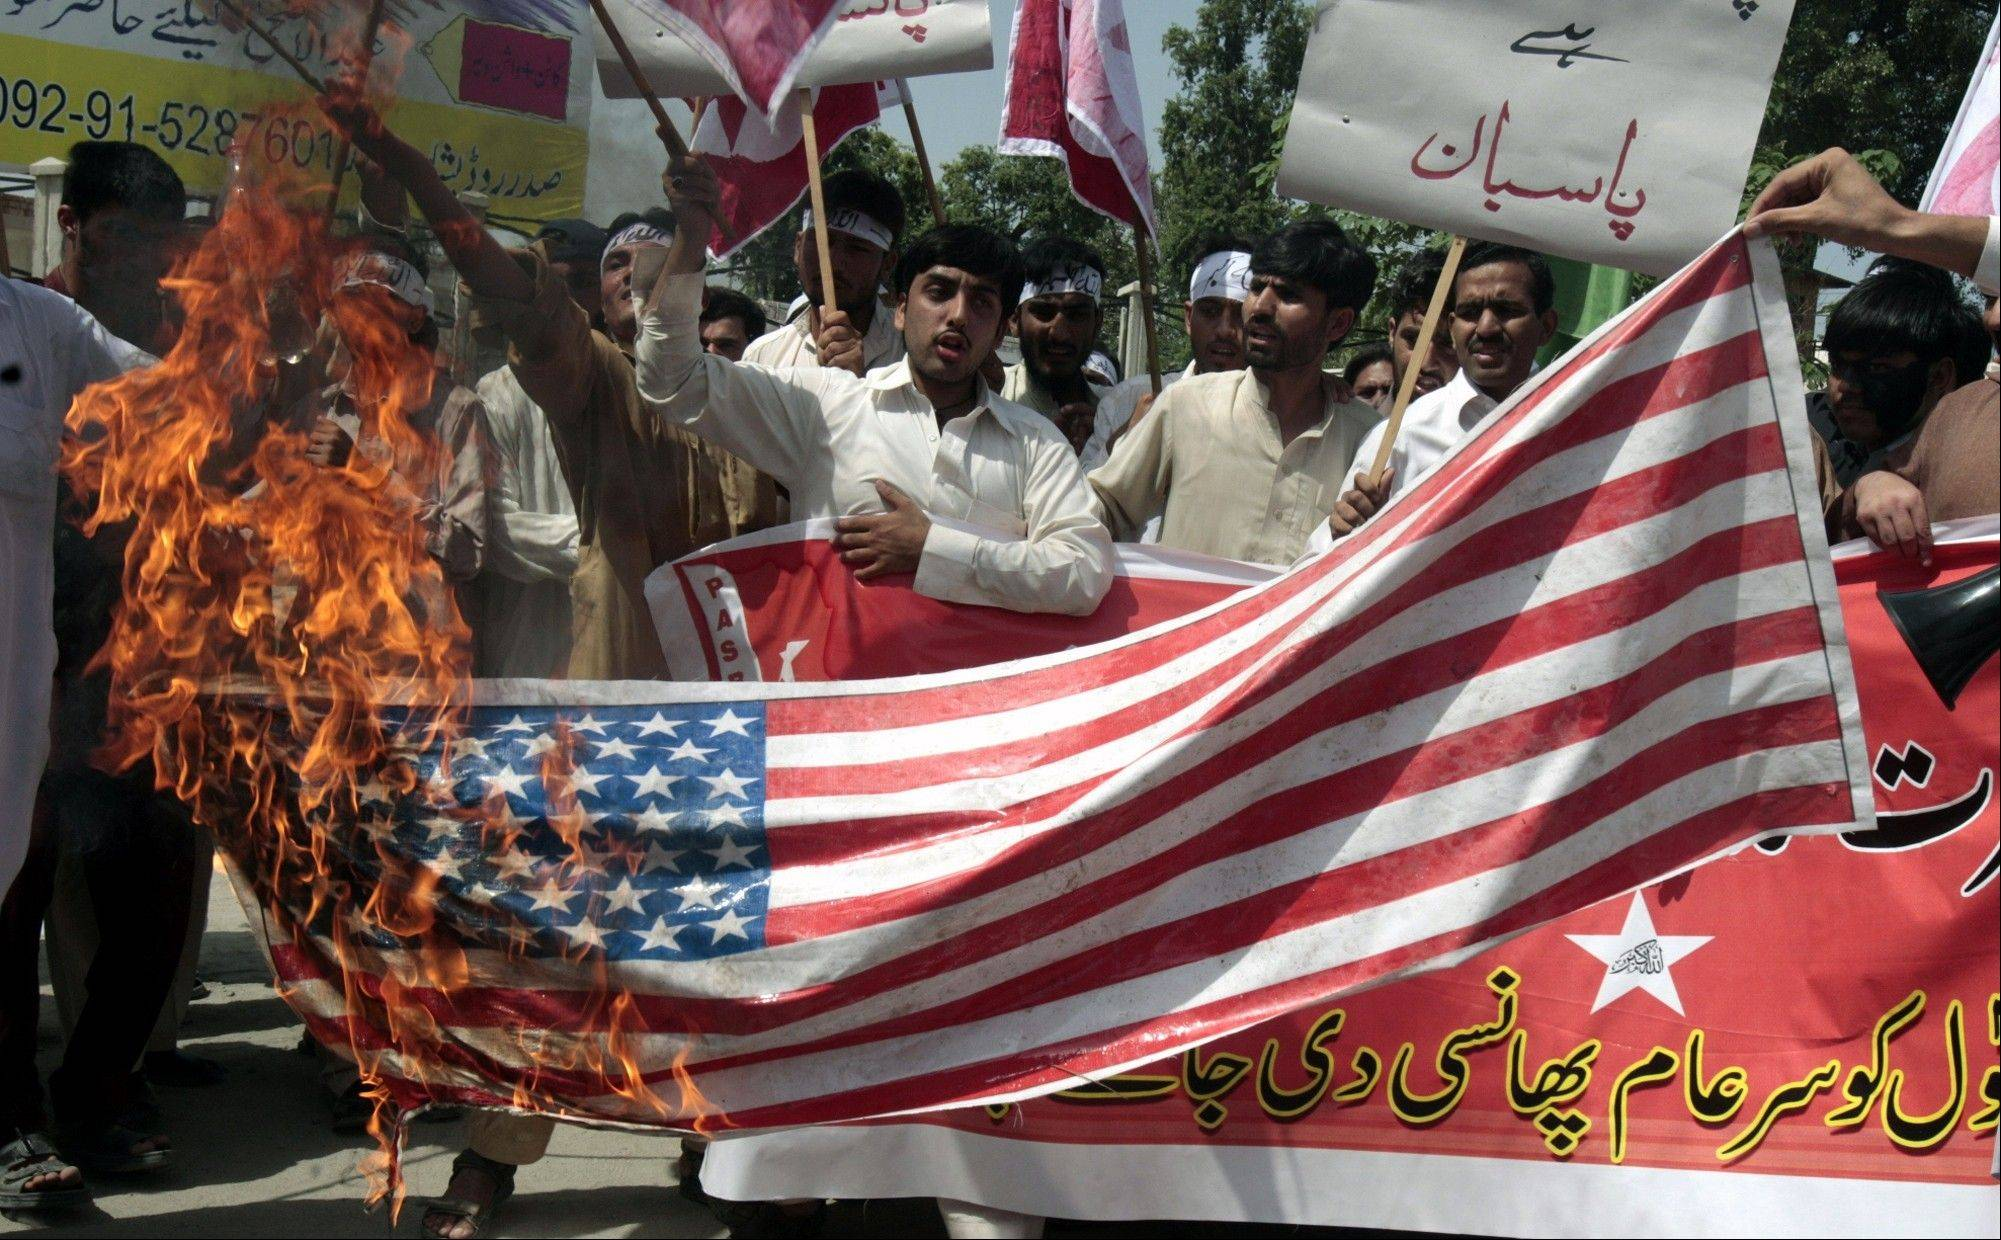 Pakistani protesters burn a representation of a U.S. flag during a demonstration that is part of widespread anger across the Muslim world about a film ridiculing Islam's Prophet Muhammad, near the US consulate in Peshawar, Pakistan, Tuesday, Sept. 18, 2012.